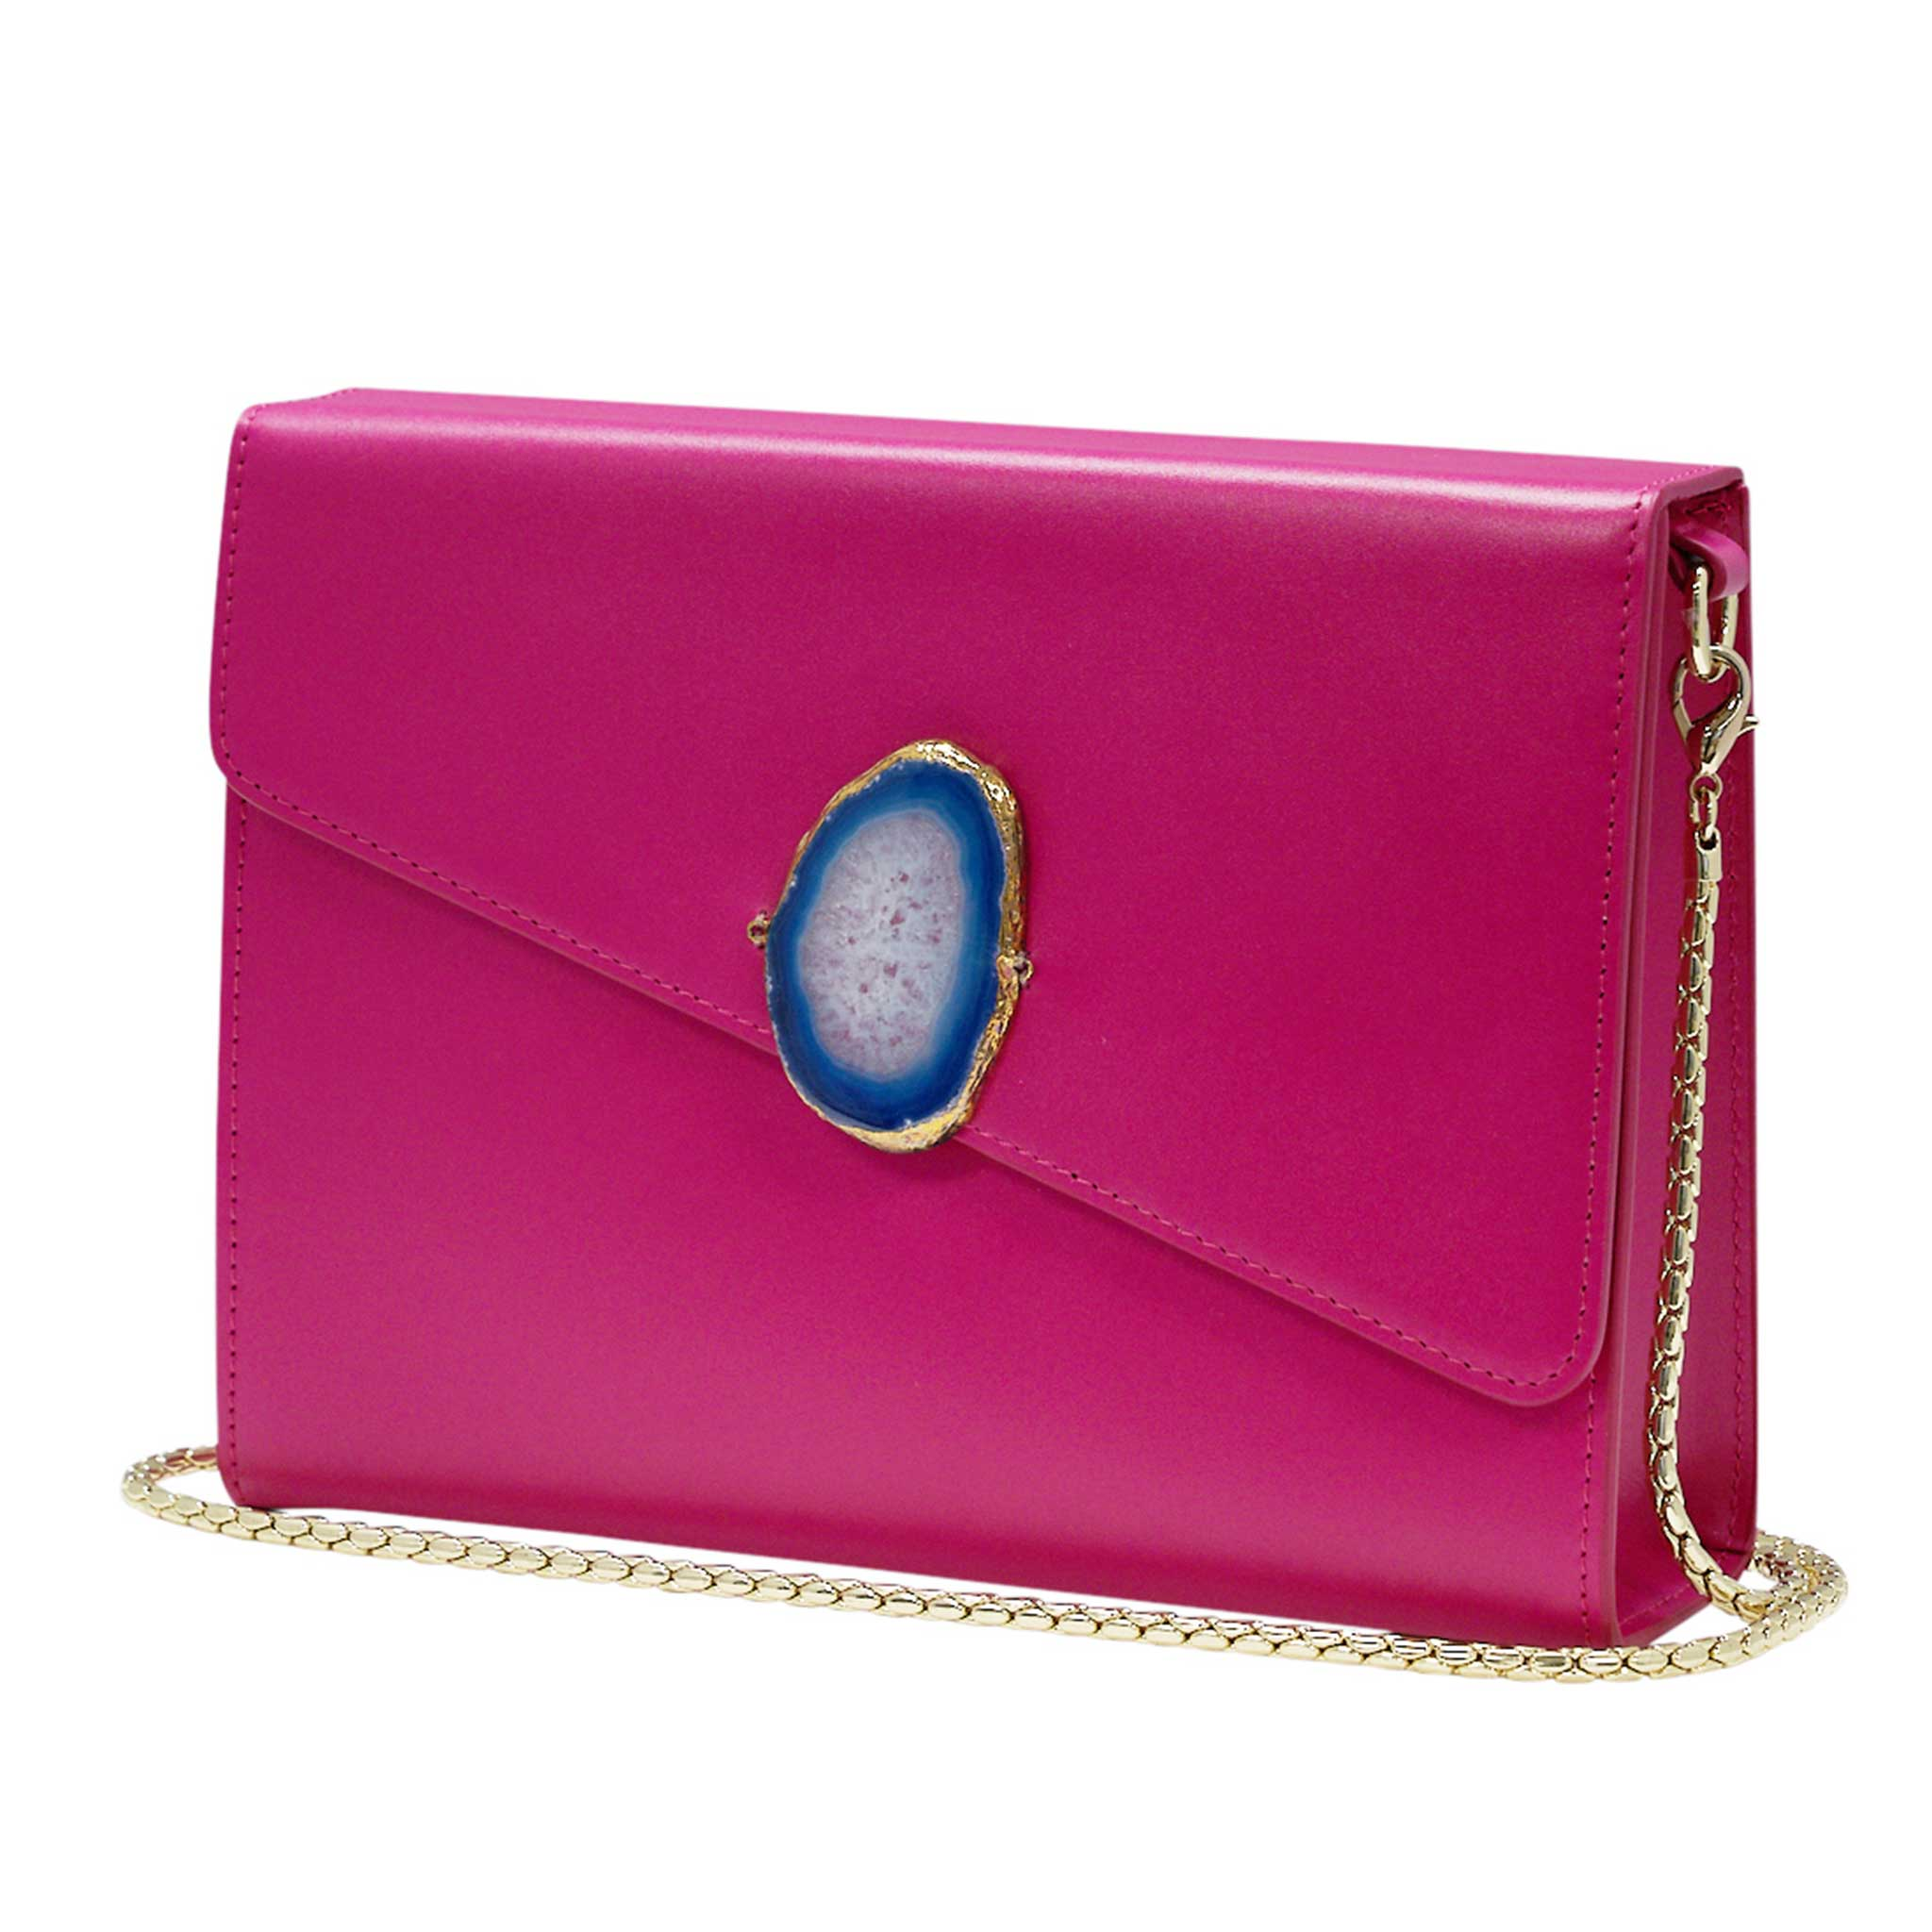 LOVED BAG - PINK RUBY LEATHER WITH BLUE AGATE - 1.01.002.038